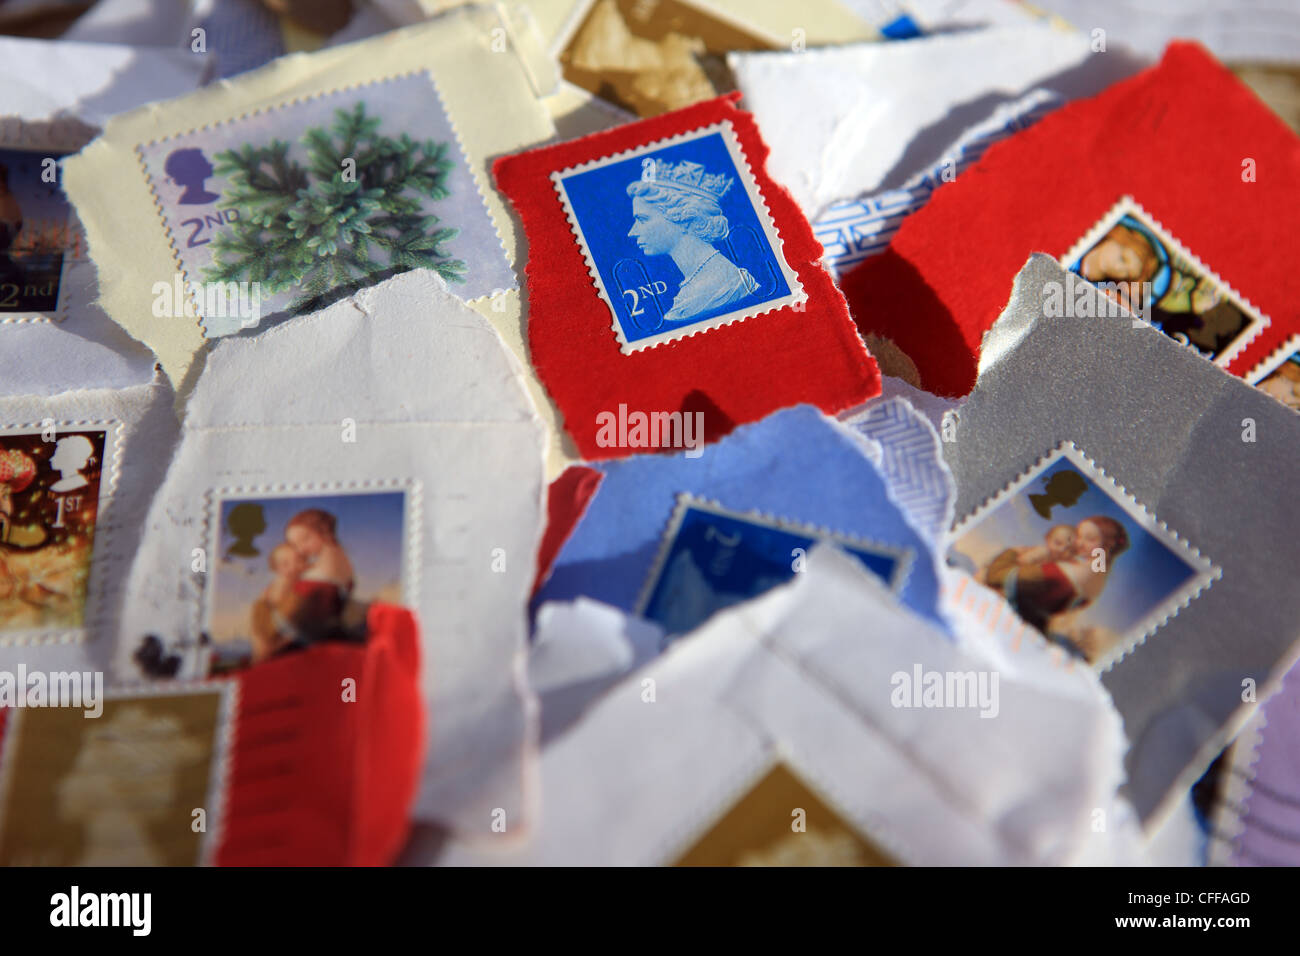 Mixture of used UK stamps from envelopes - Stock Image